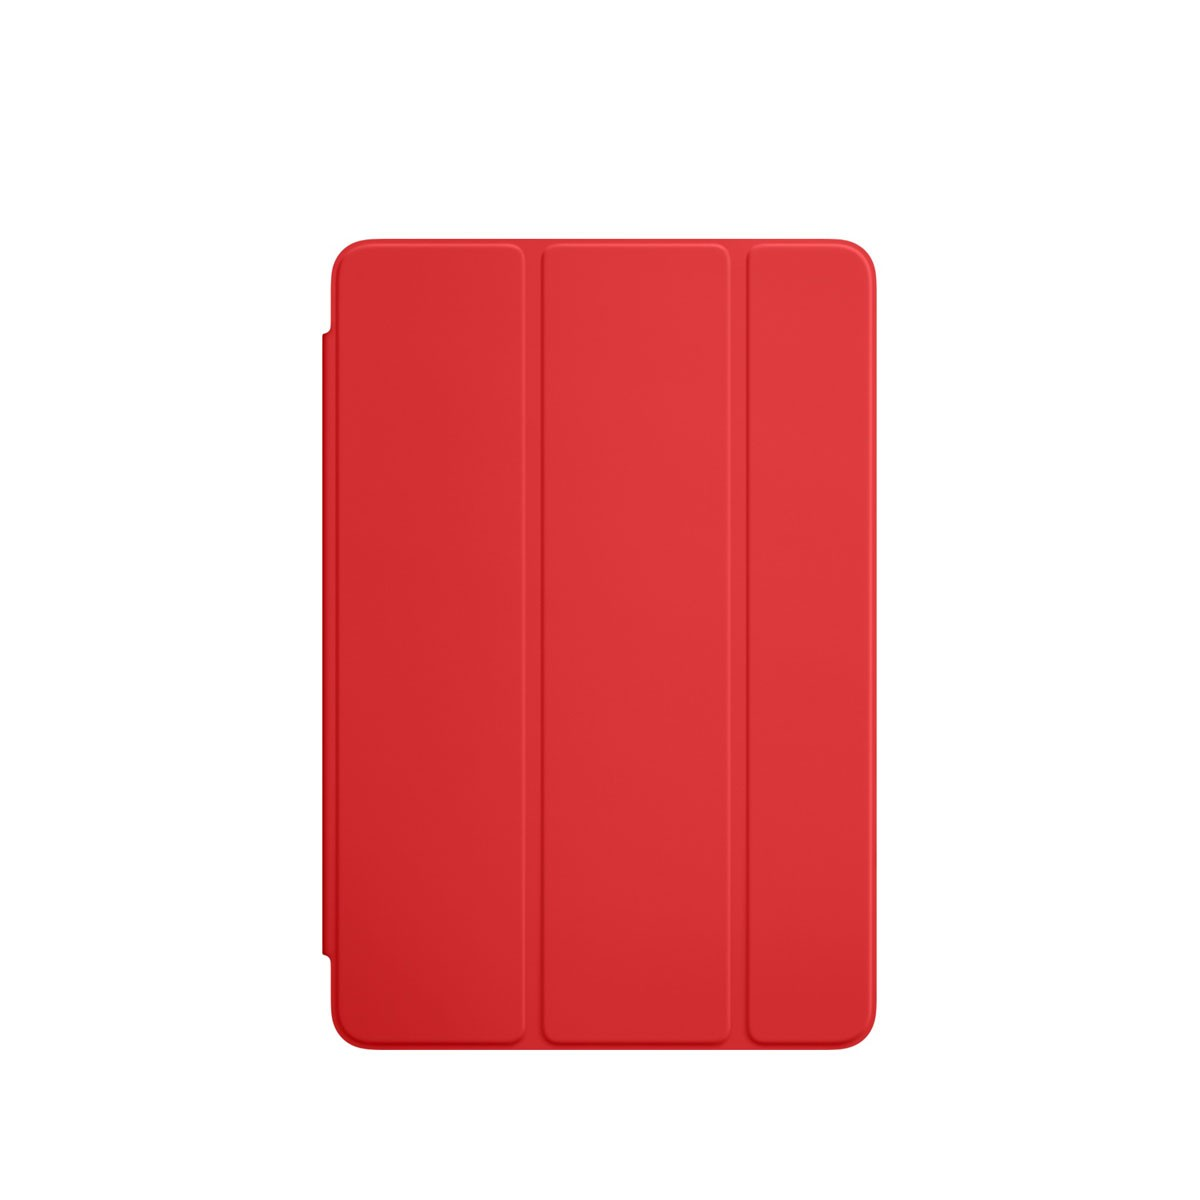 Apple iPad mini 4 Smart Cover – (PRODUCT)RED mkly2zm/a